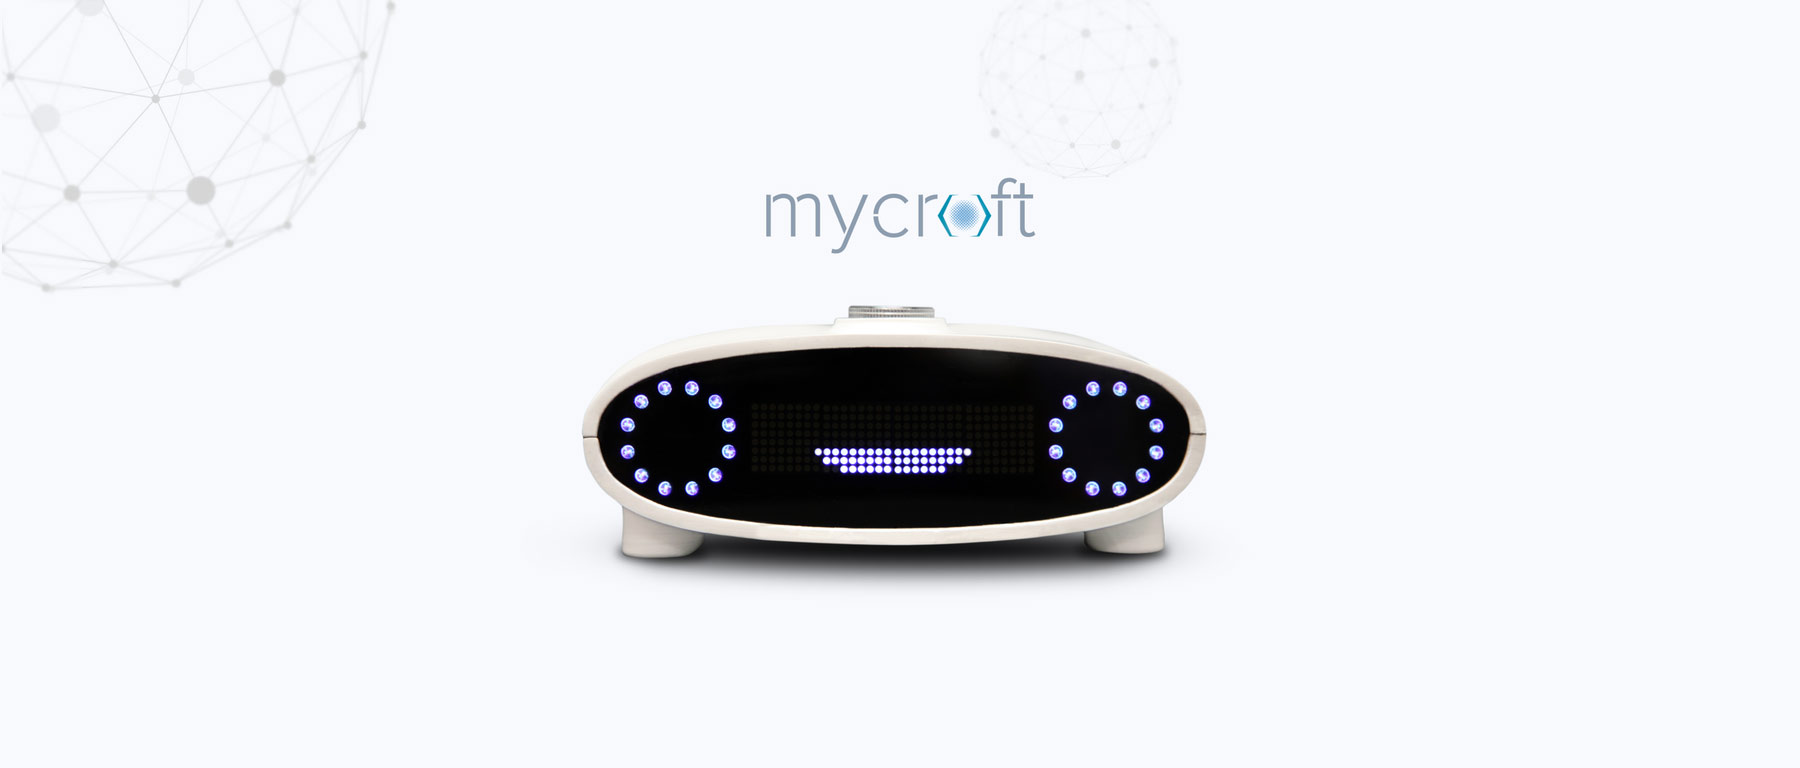 mycroft_assistant_personnel_voix_raspberry_home